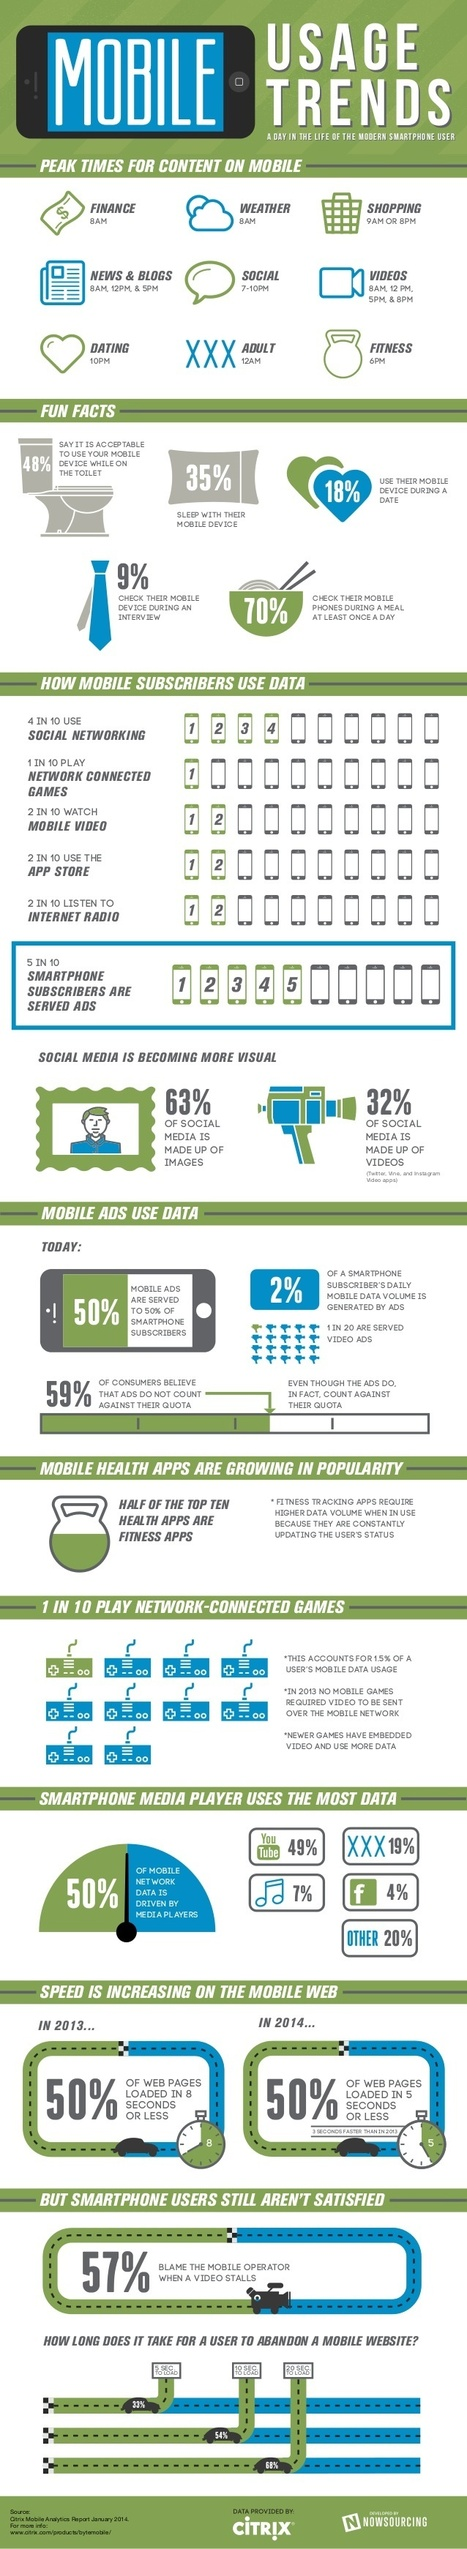 Social Networking, Games, Video & Apps – Day In The Life Of A Smartphone User [INFOGRAPHIC] | Mobile | Scoop.it